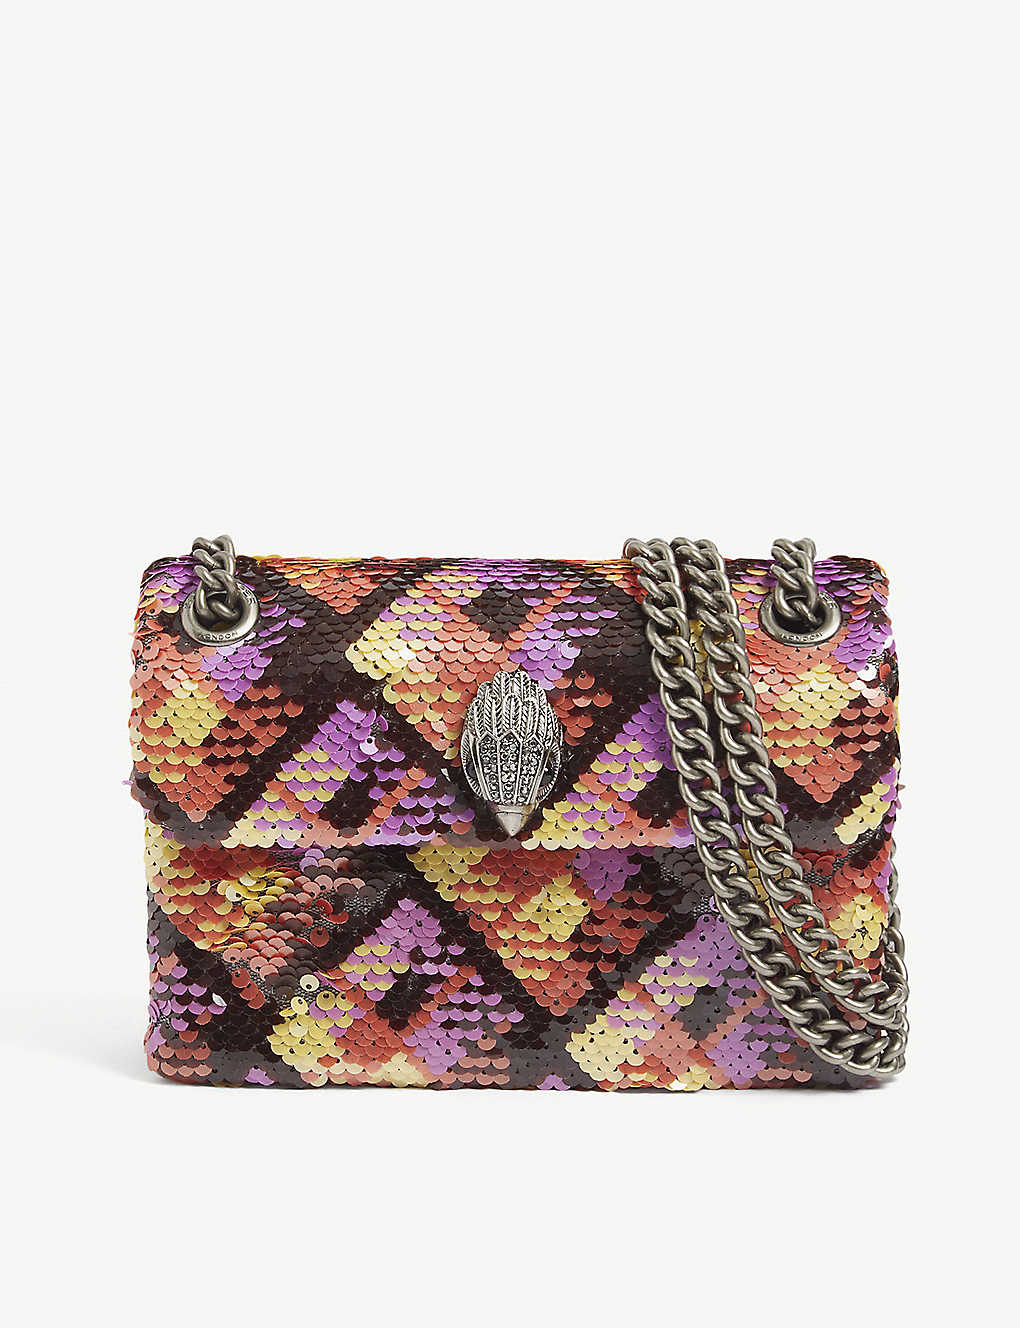 KURT GEIGER LONDON: Kensington sequin check shoulder bag